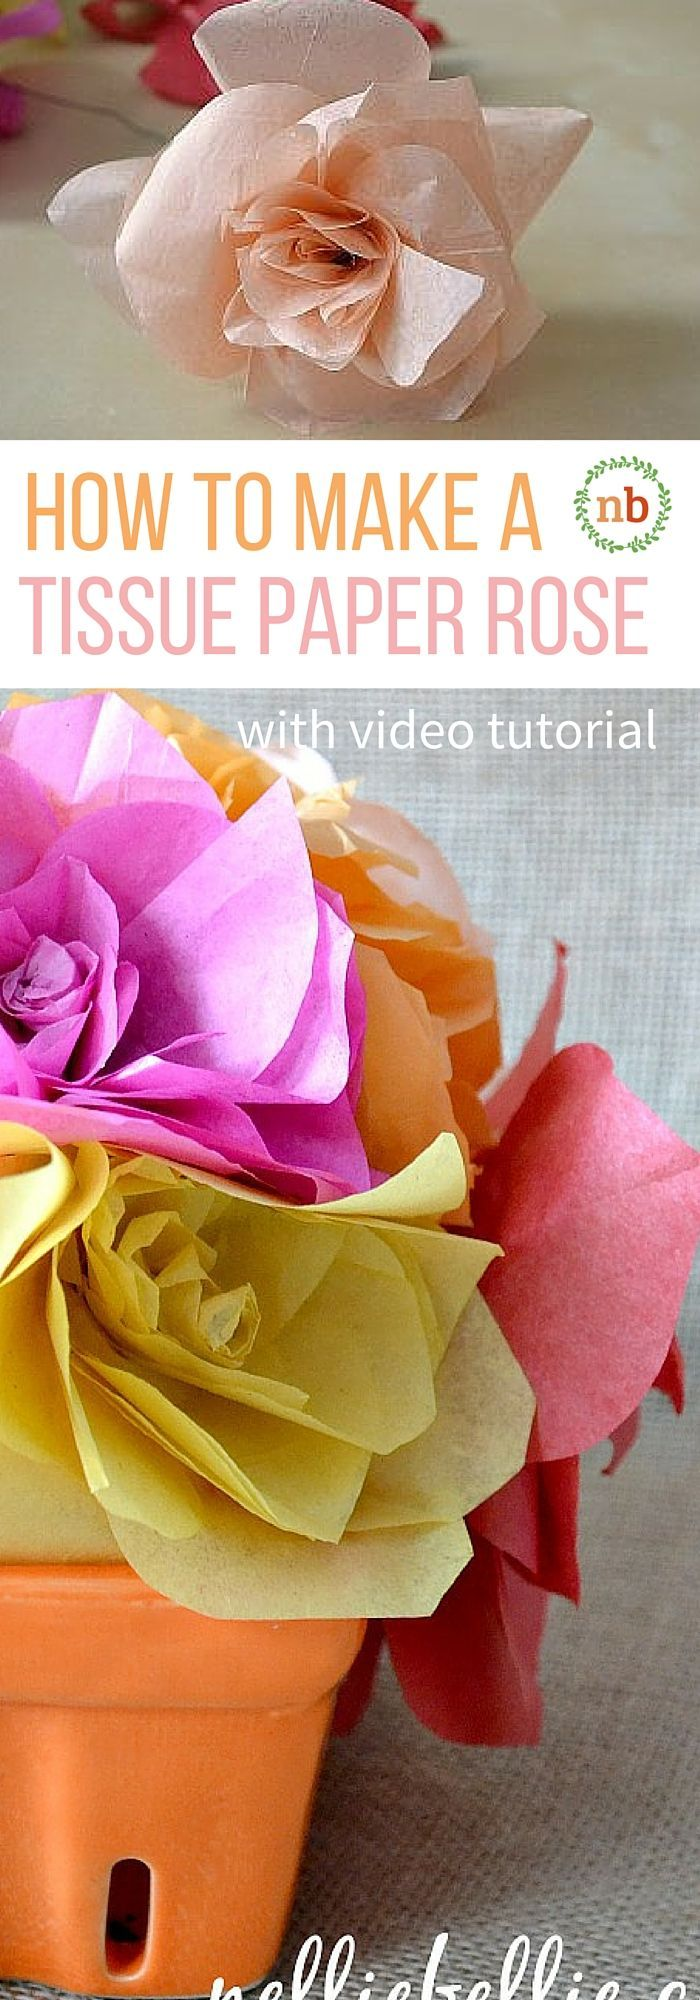 222 Best Paper Flowers Images On Pinterest Paper Flowers Craft